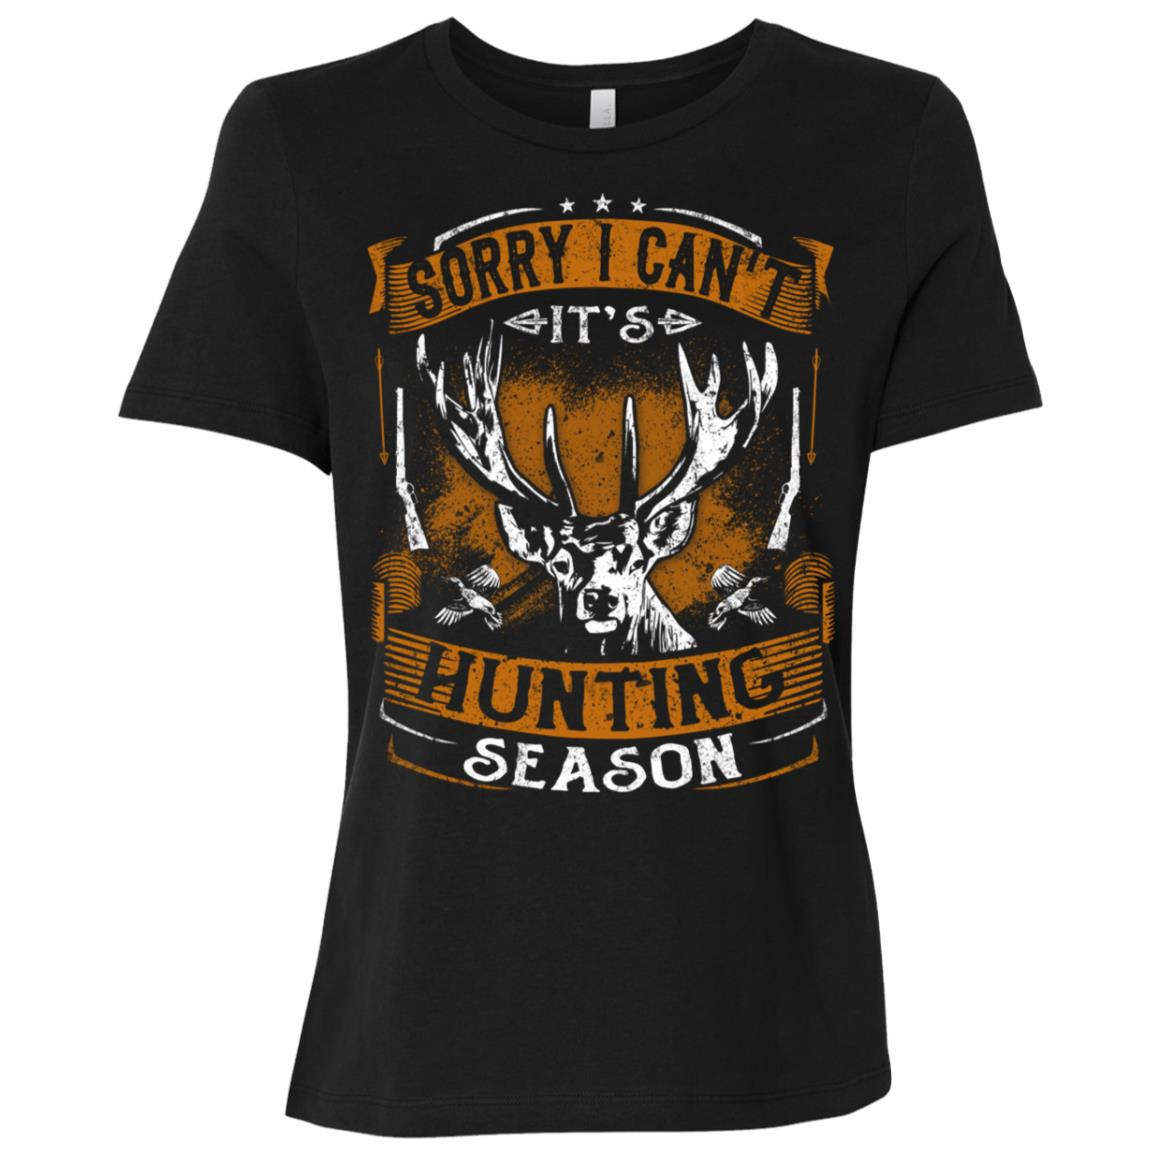 Sorry I Can't It's Hunting Season Deer Hunters Women Short Sleeve T-Shirt